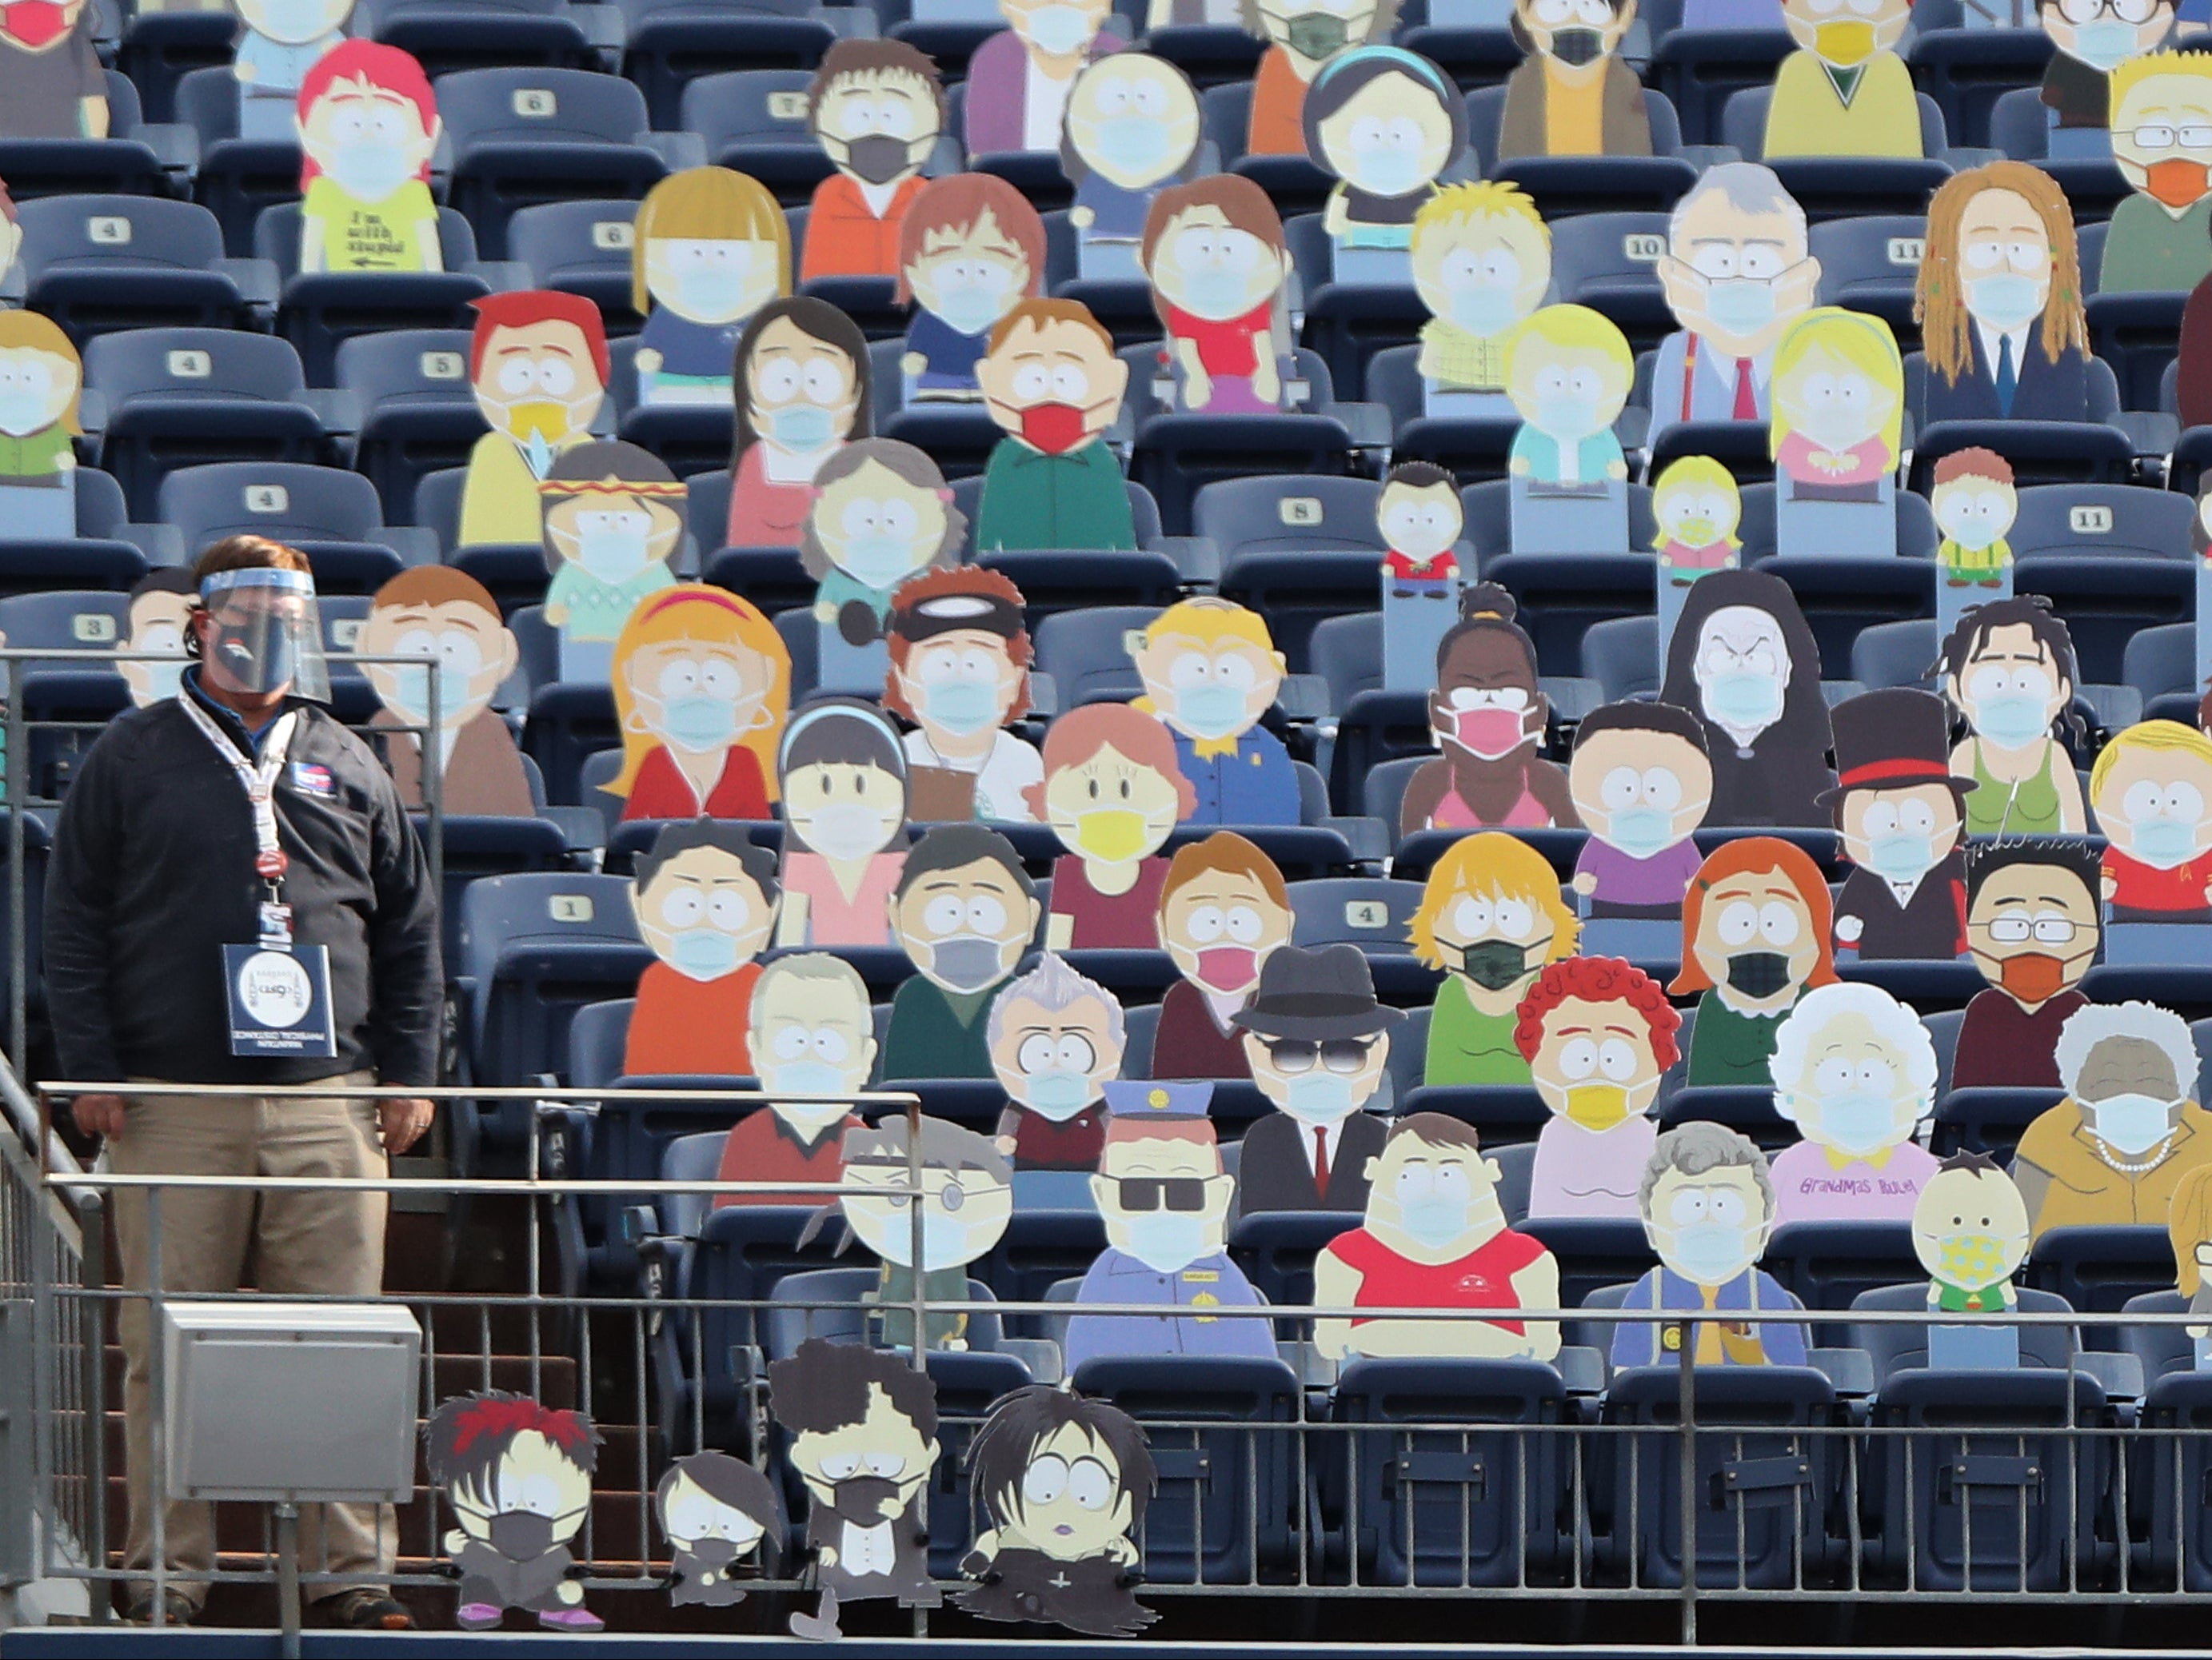 South Park characters replace stadium crowd during Denver Broncos NFL game | The Independent